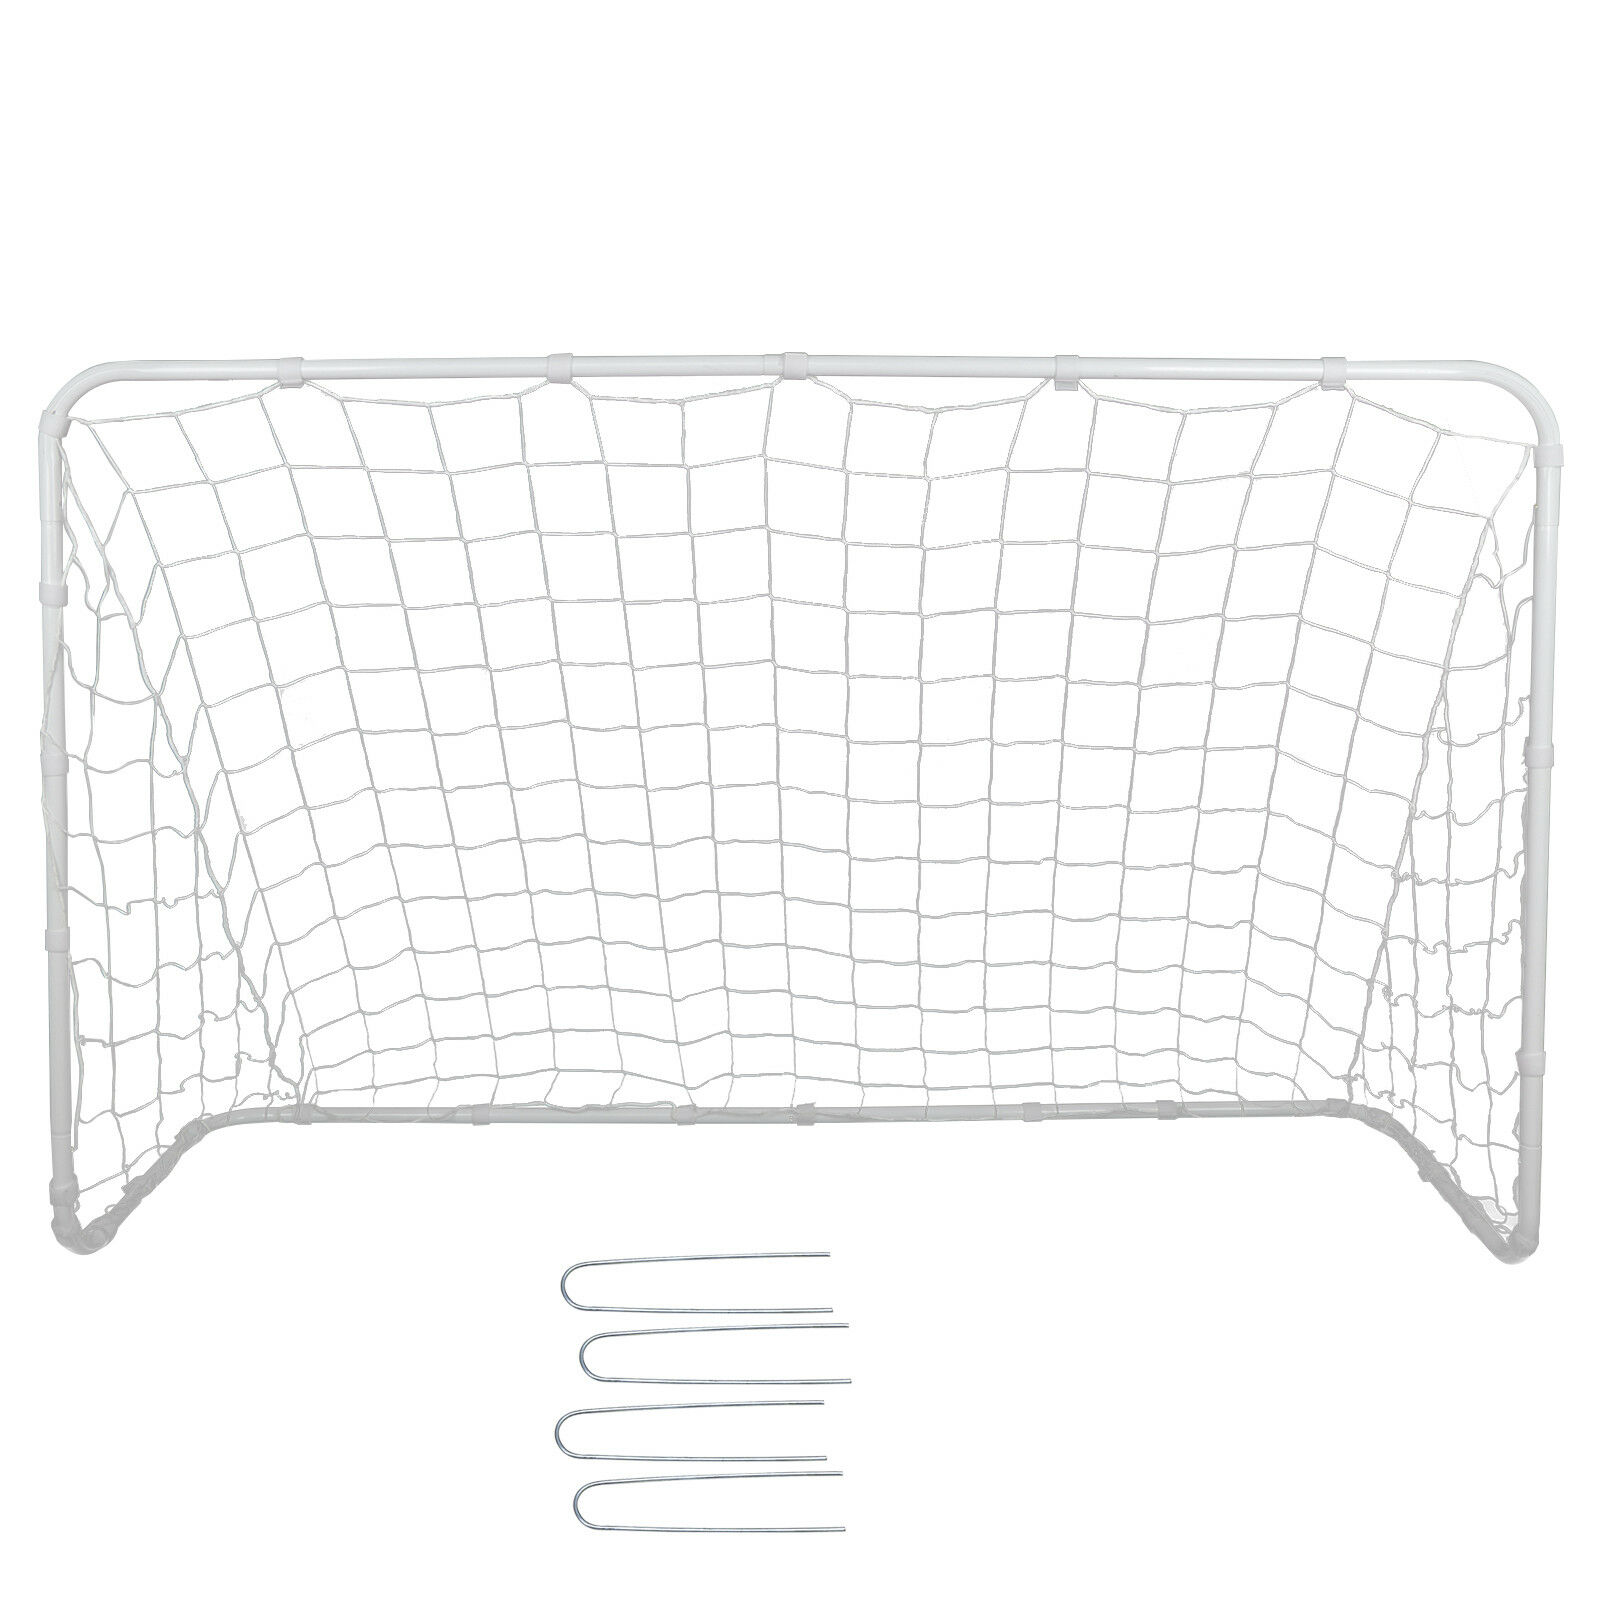 Portable Youth Size 4×6 Ft Practice Soccer Goal w/ Ground Stakes & Strips Goals & Nets